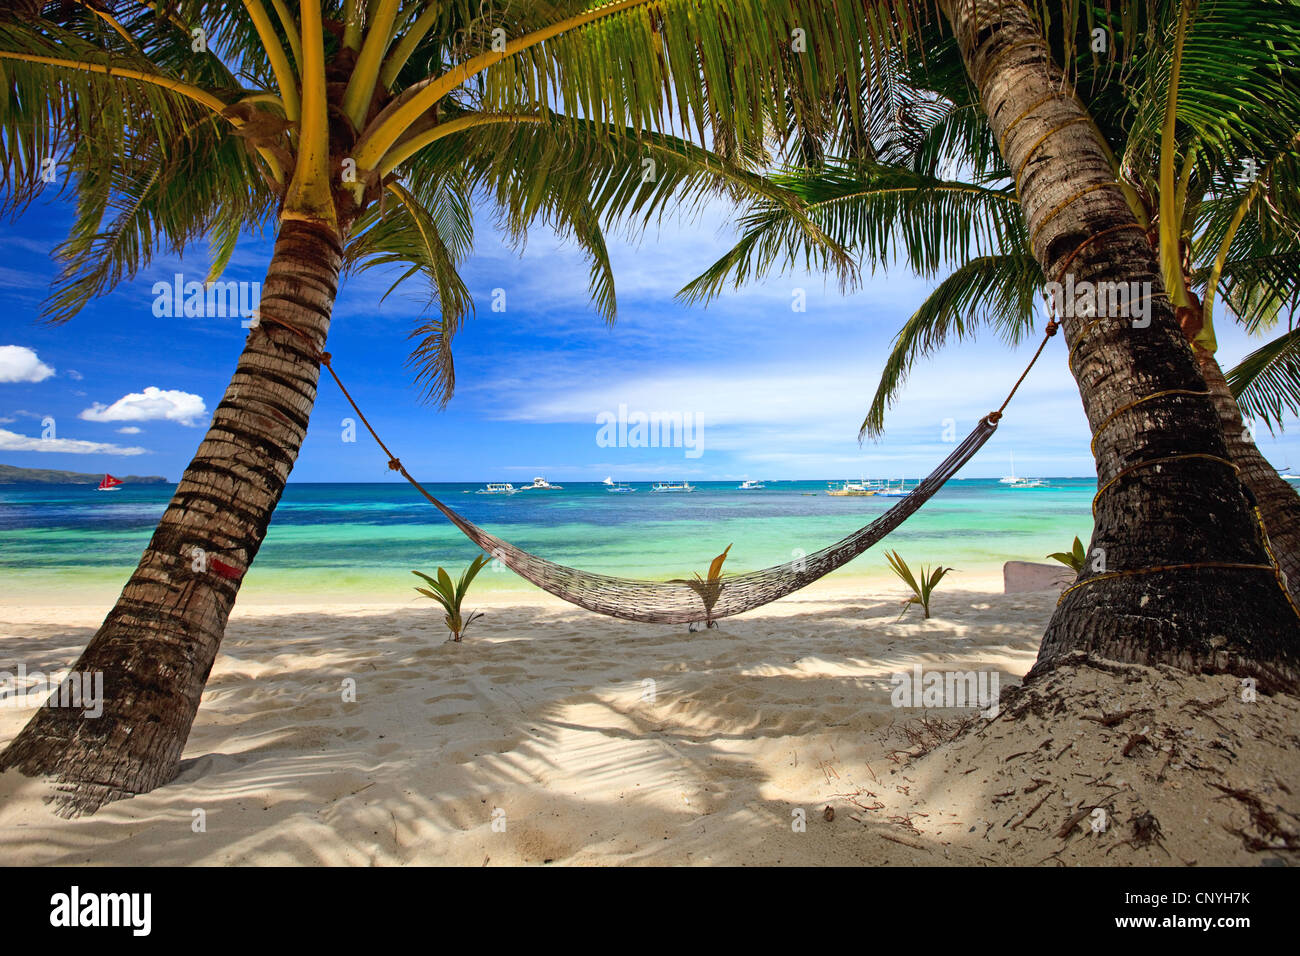 Hammock Between Two Palm Trees At Tropical Beach